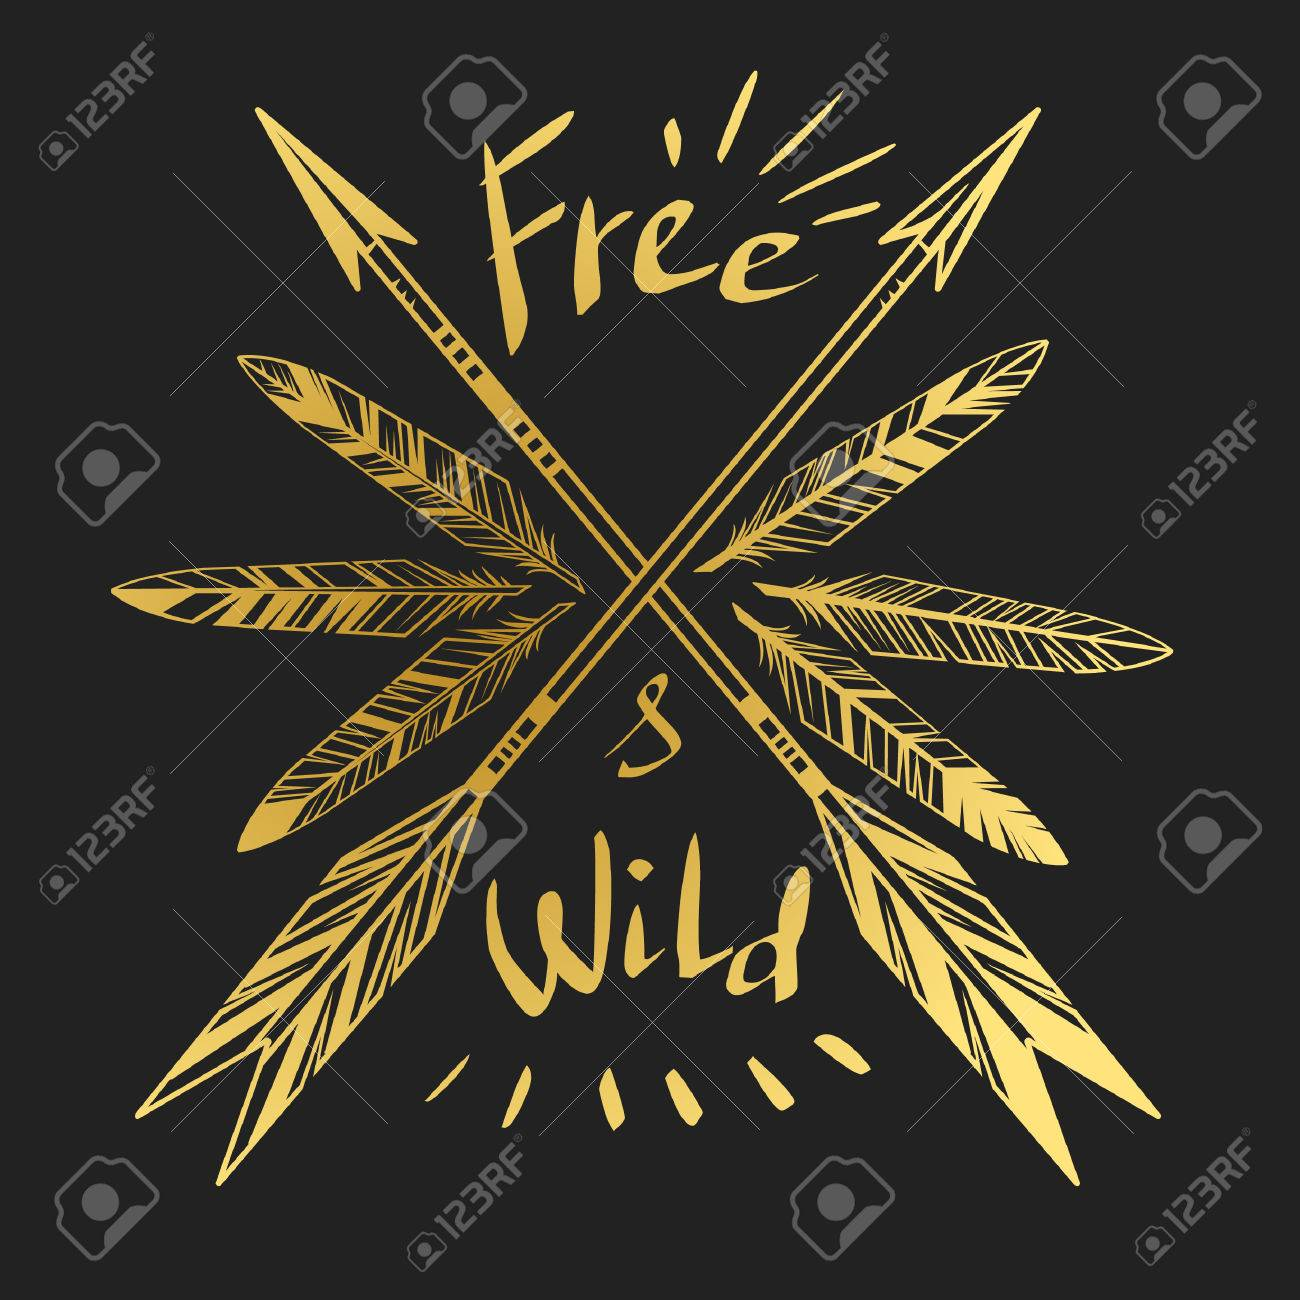 Arrows And Feathers On Black Background Royalty Free Cliparts Vectors And Stock Illustration Image 48775845